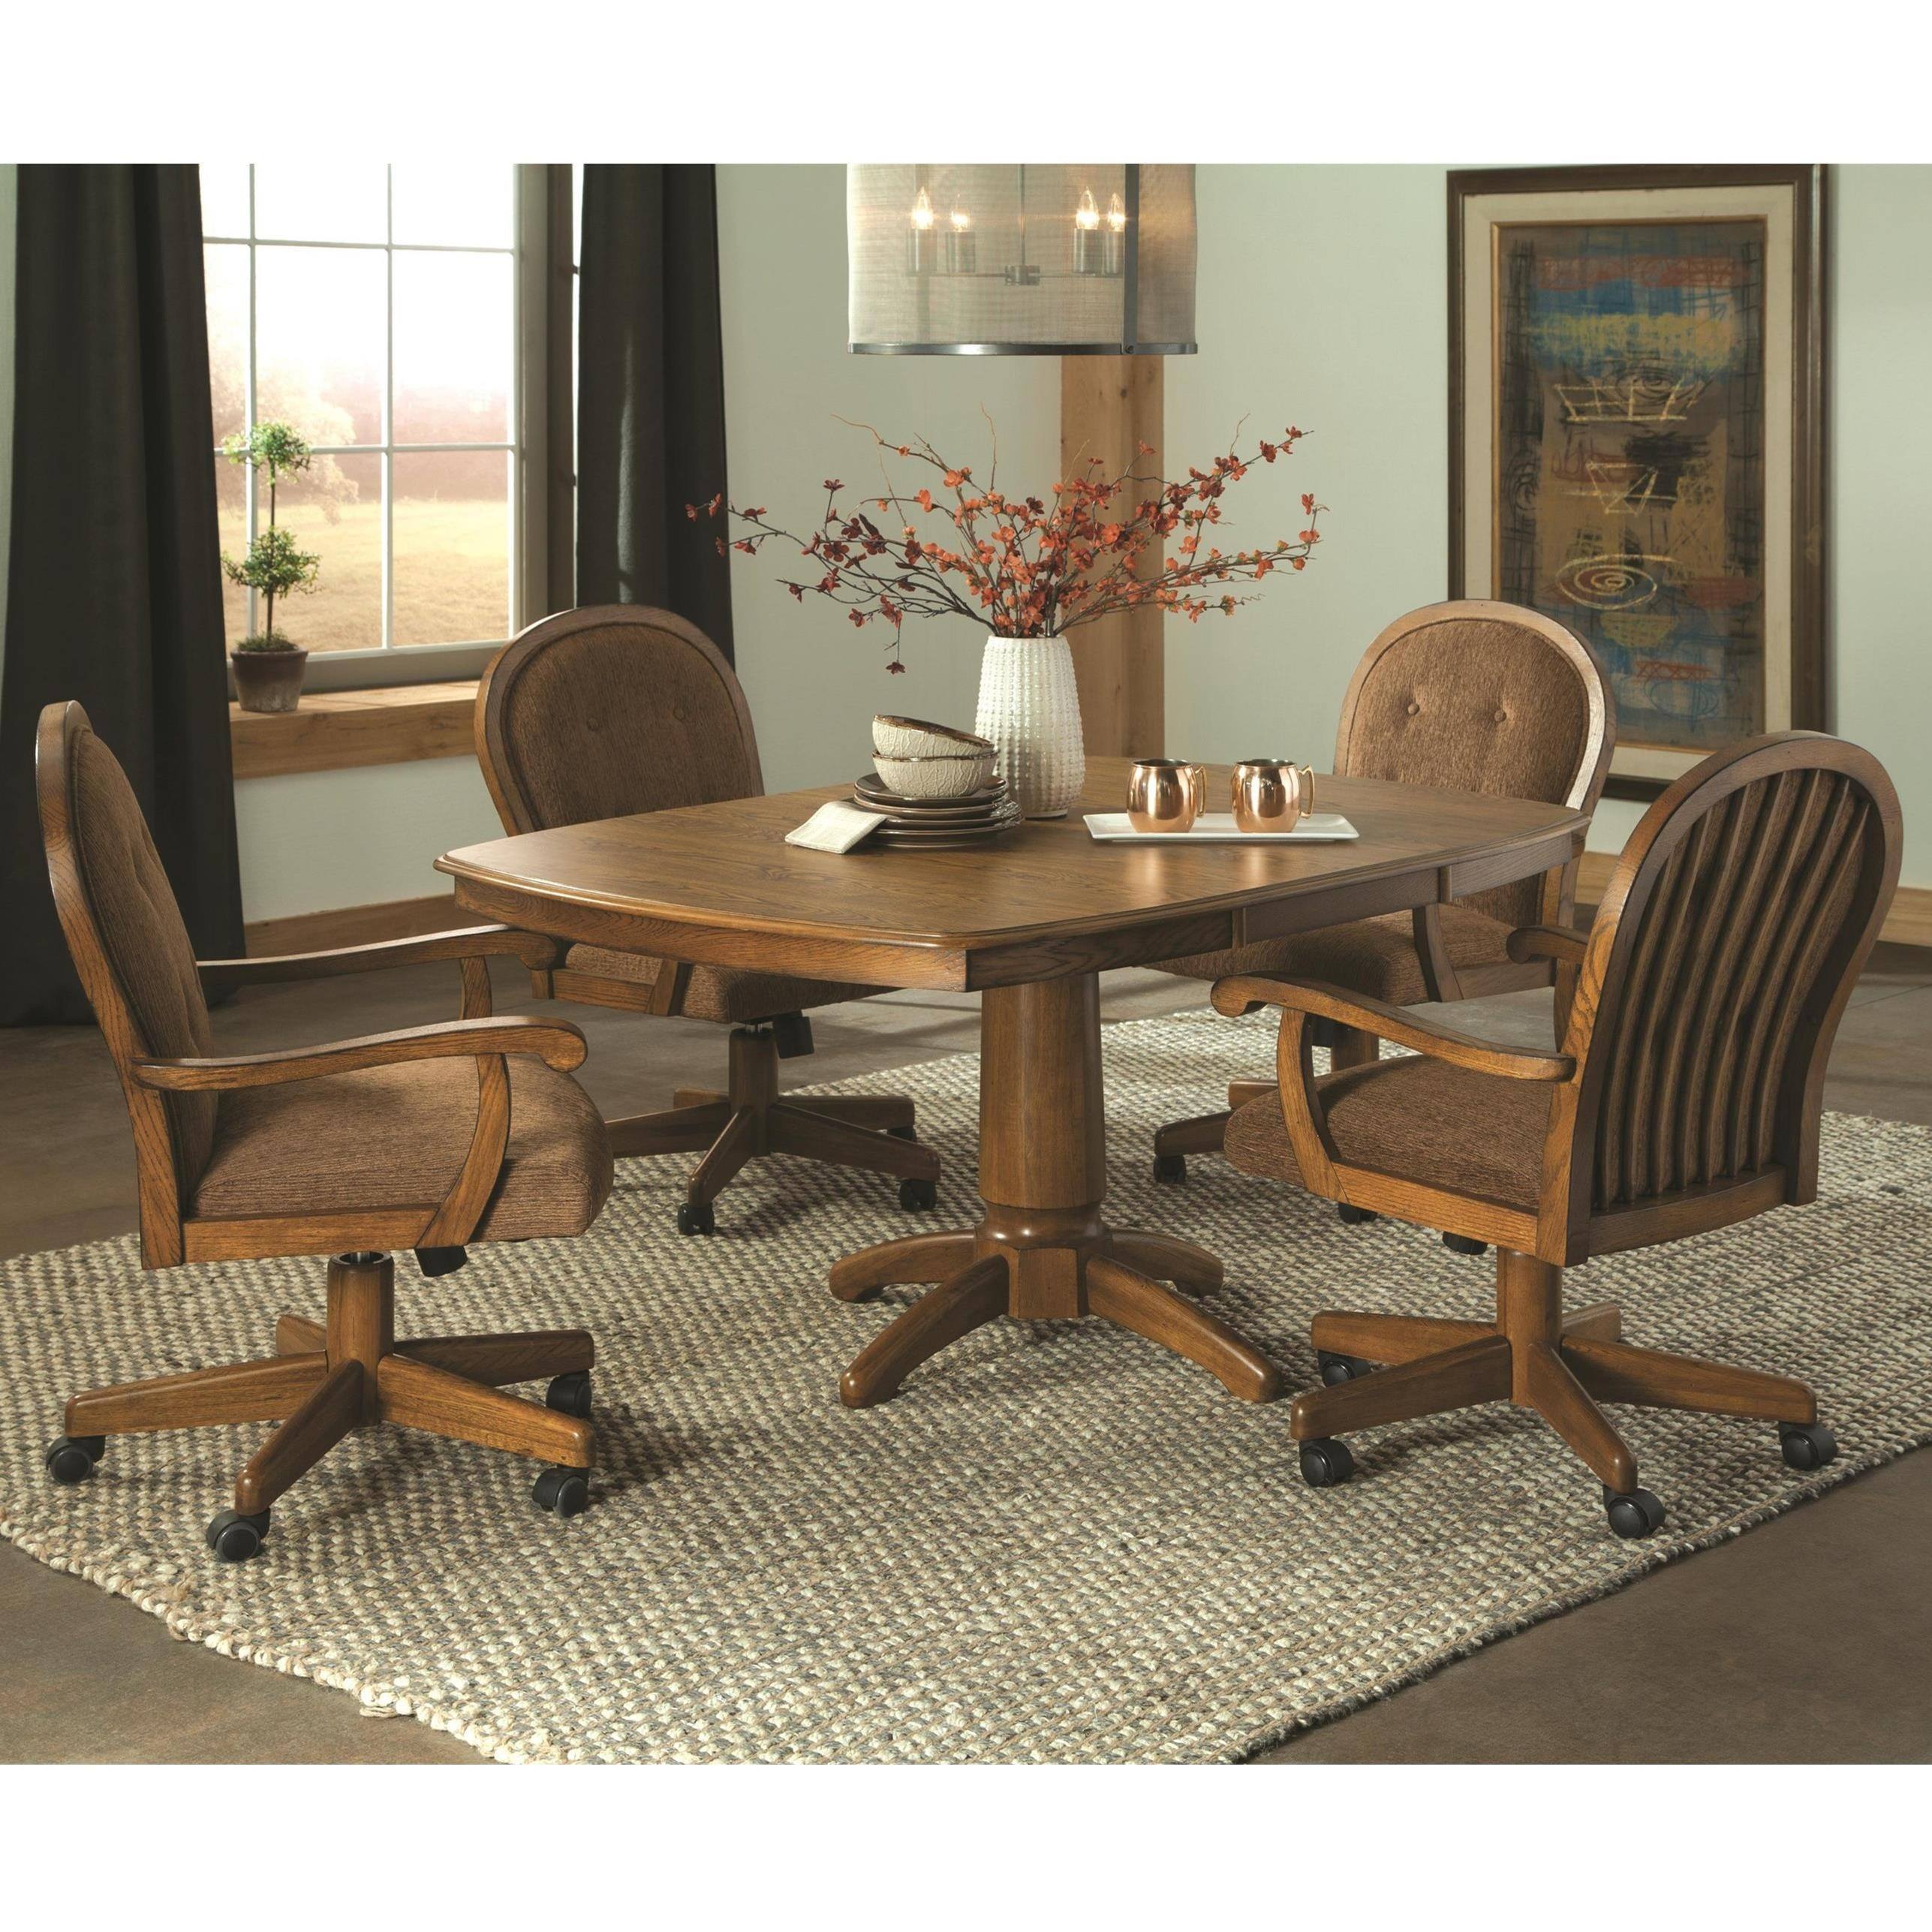 Brooks Easy Living 5 Piece Caster Swivel Chair Dining Set